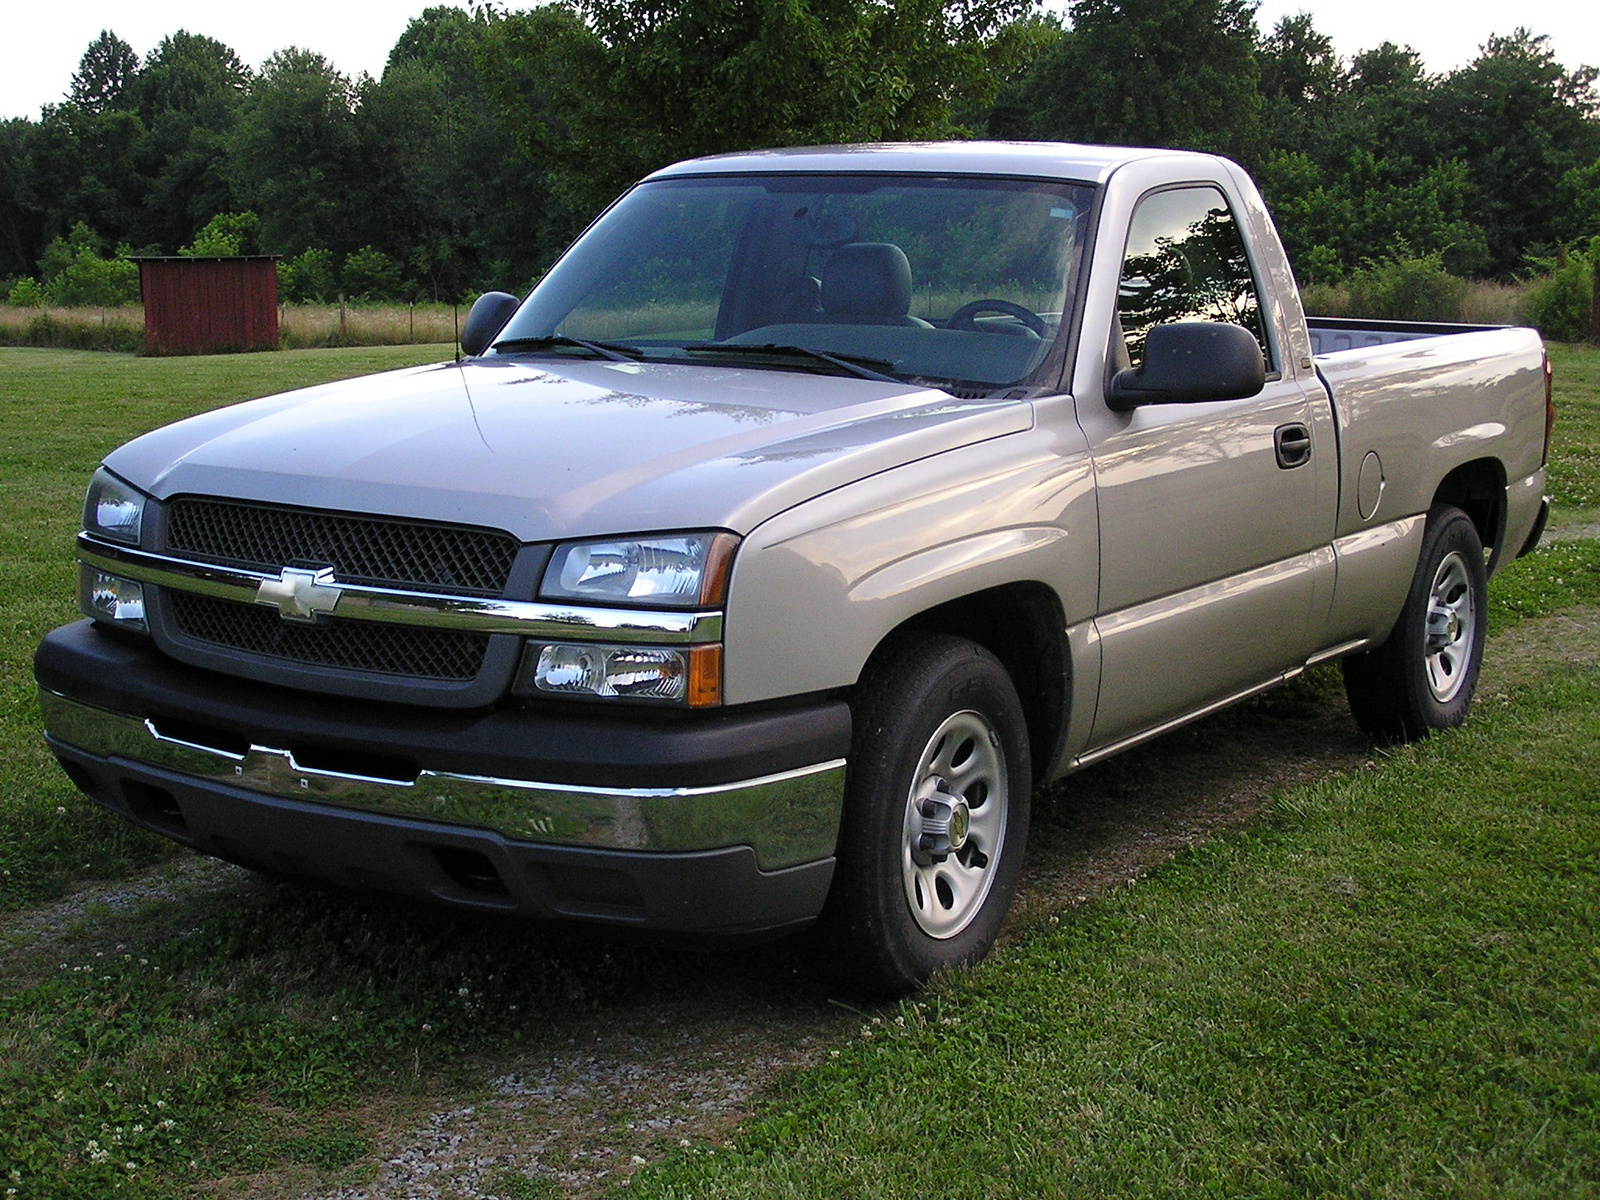 dodge ram 2004 price 2004 dodge ram 1500 westin ultimate bull bar realtruck com ranch hand. Black Bedroom Furniture Sets. Home Design Ideas